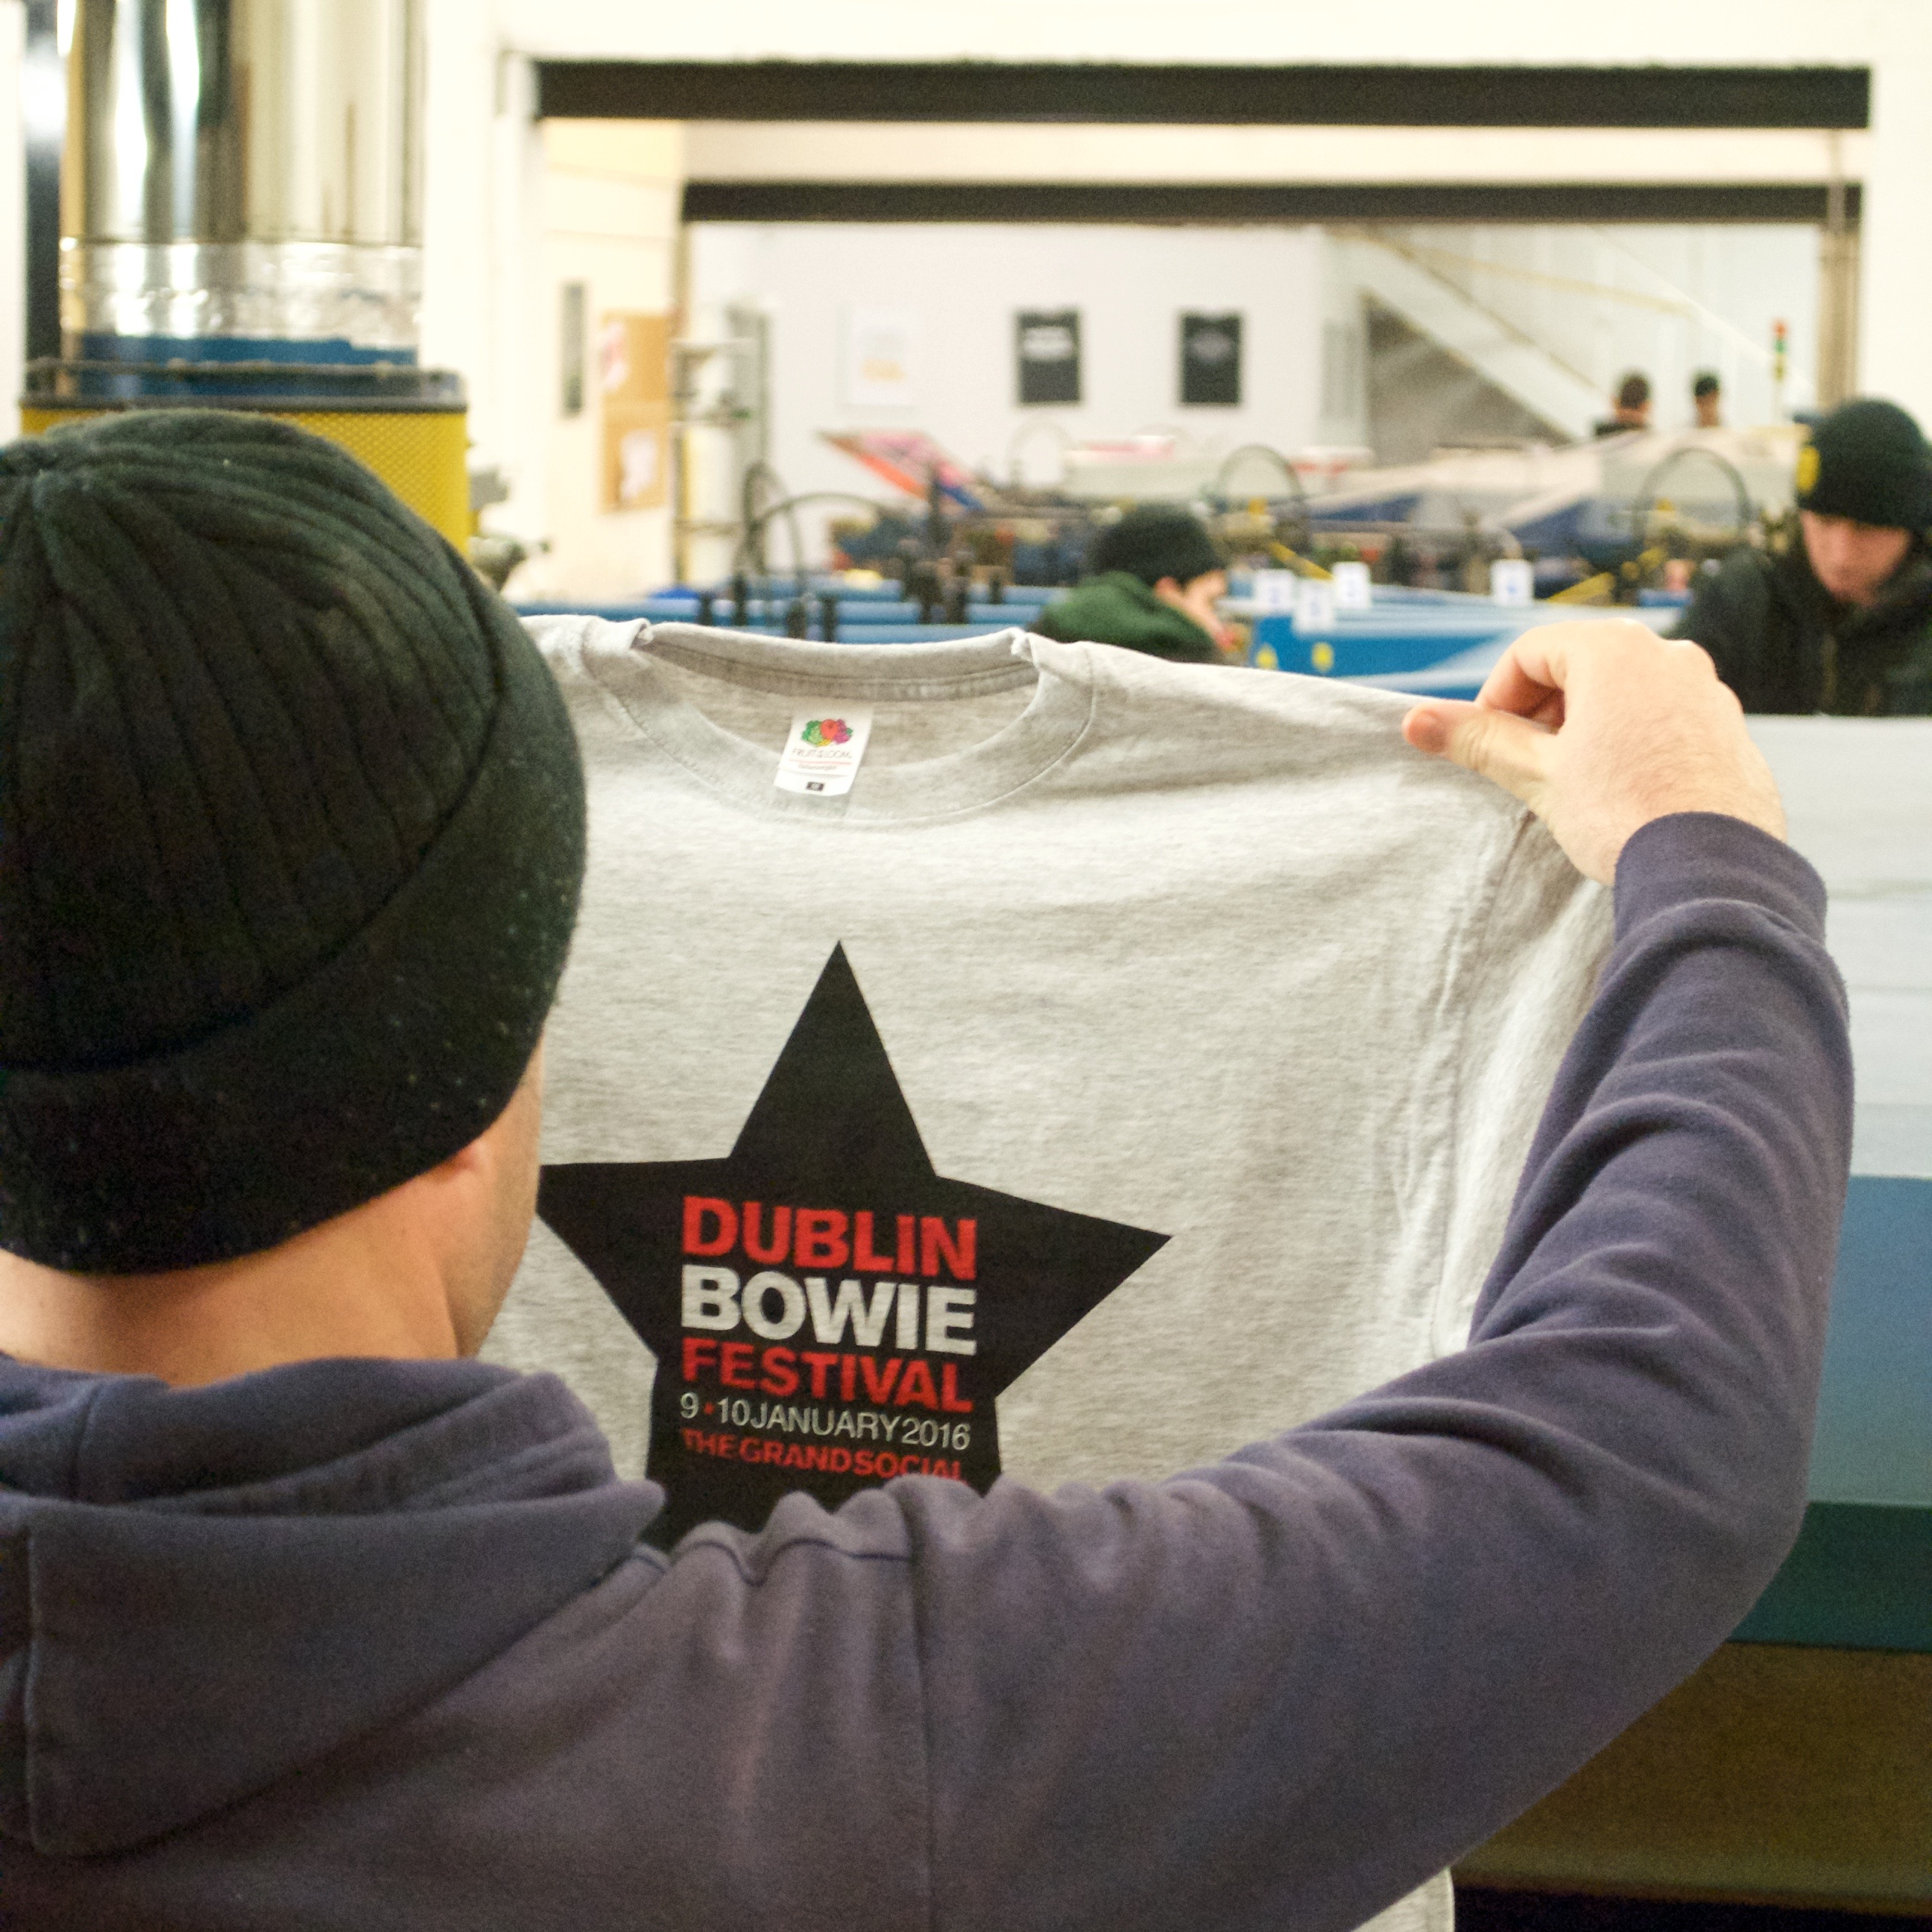 Vinny from the T-Shirt Company with a David Bowie festival heather grey fruit of the loom t-shirt